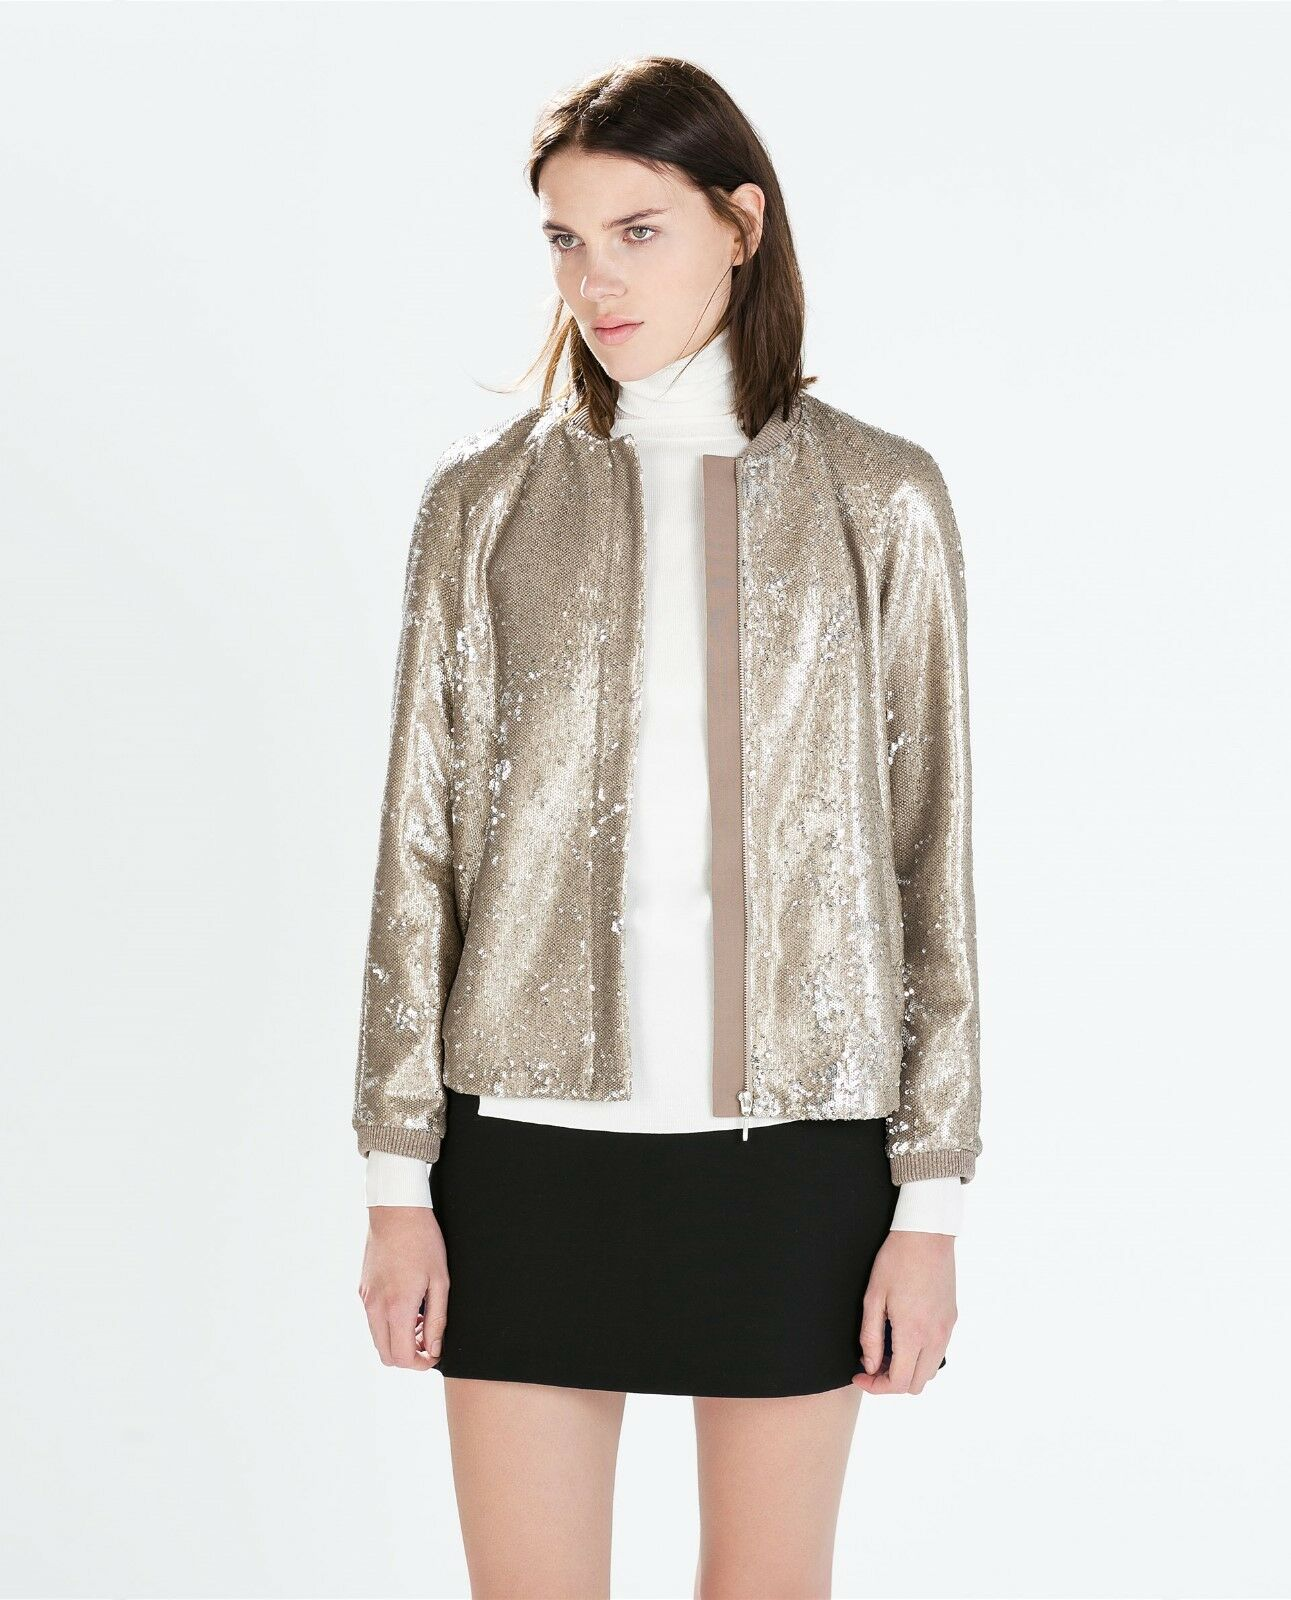 Veste bomber or doré ZARA - XS 34 - Neuf 8077 138 - SOLD OUT Sequins paillettes